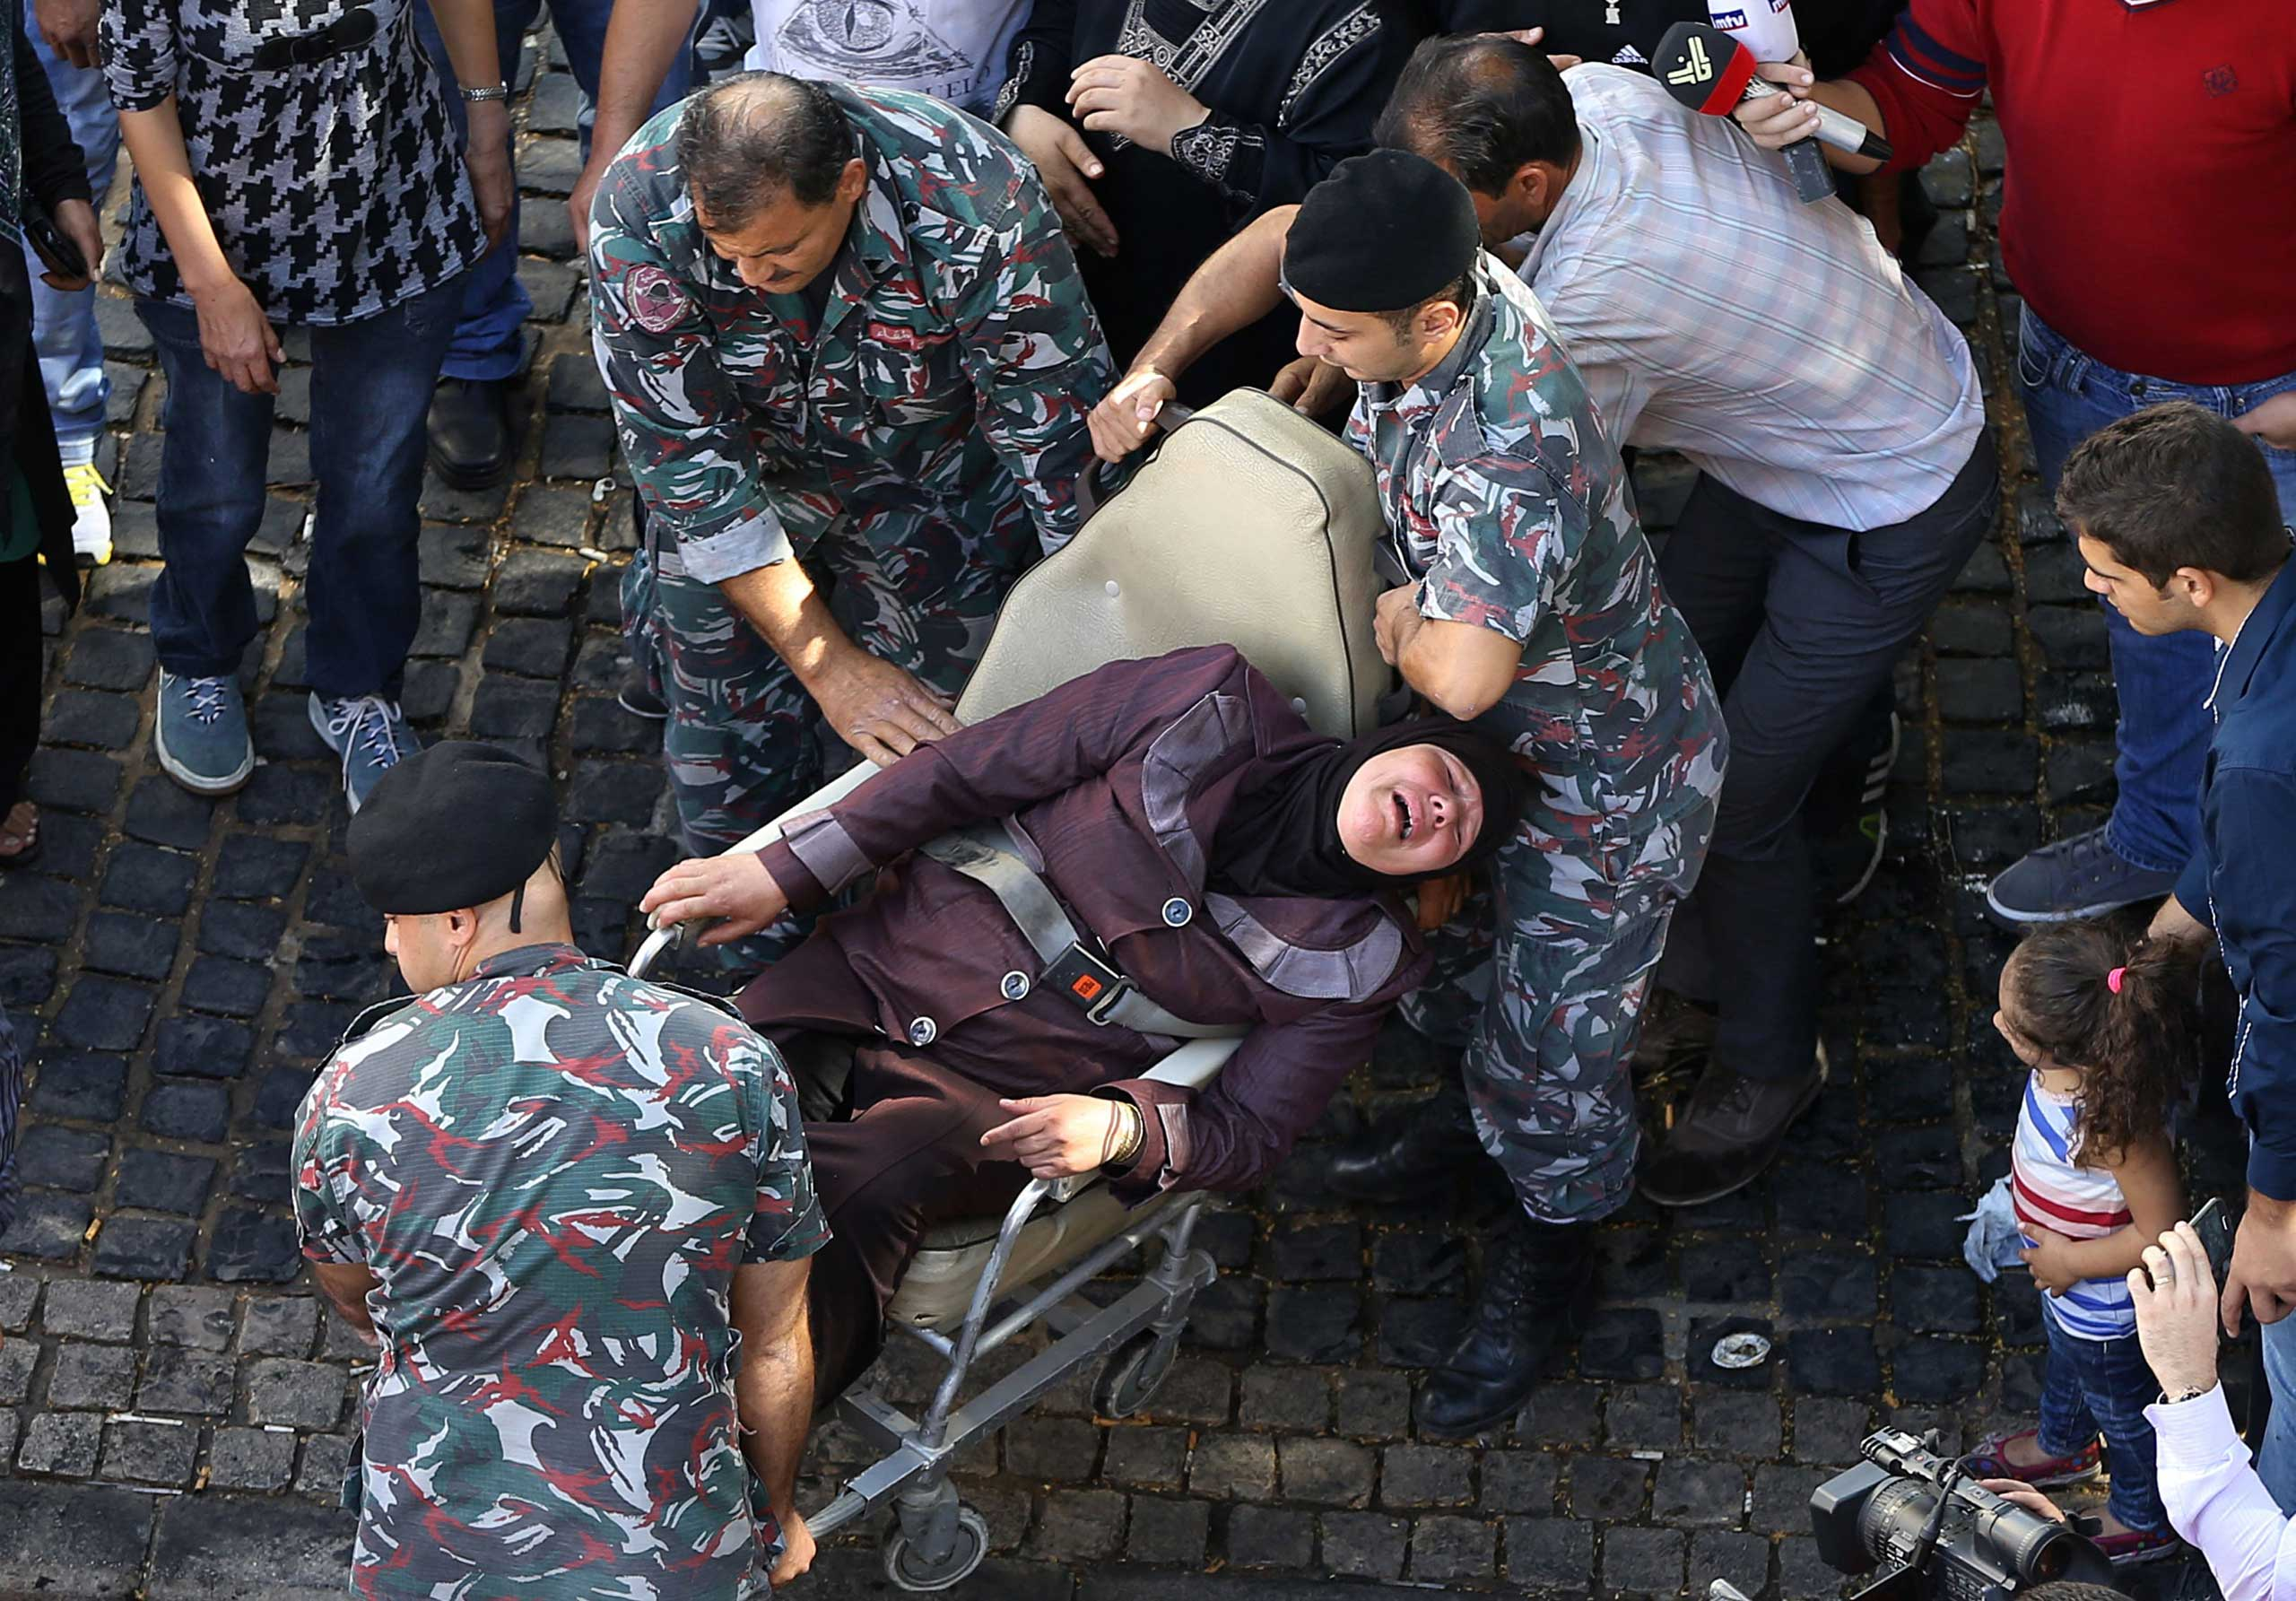 Oct. 30, 2014. A Lebanese mother of a soldier who was kidnapped by Islamic State militants and the Nusra Front, is carried by firefighters after she tried to burn herself with fuel, at an open-ended sit-in by families of kidnapped soldiers and policemen, in downtown Beirut. Militants from the Islamic State (ISIS) extremist group seized around 20 soldiers and policemen after overrunning a Lebanese border town in early August.